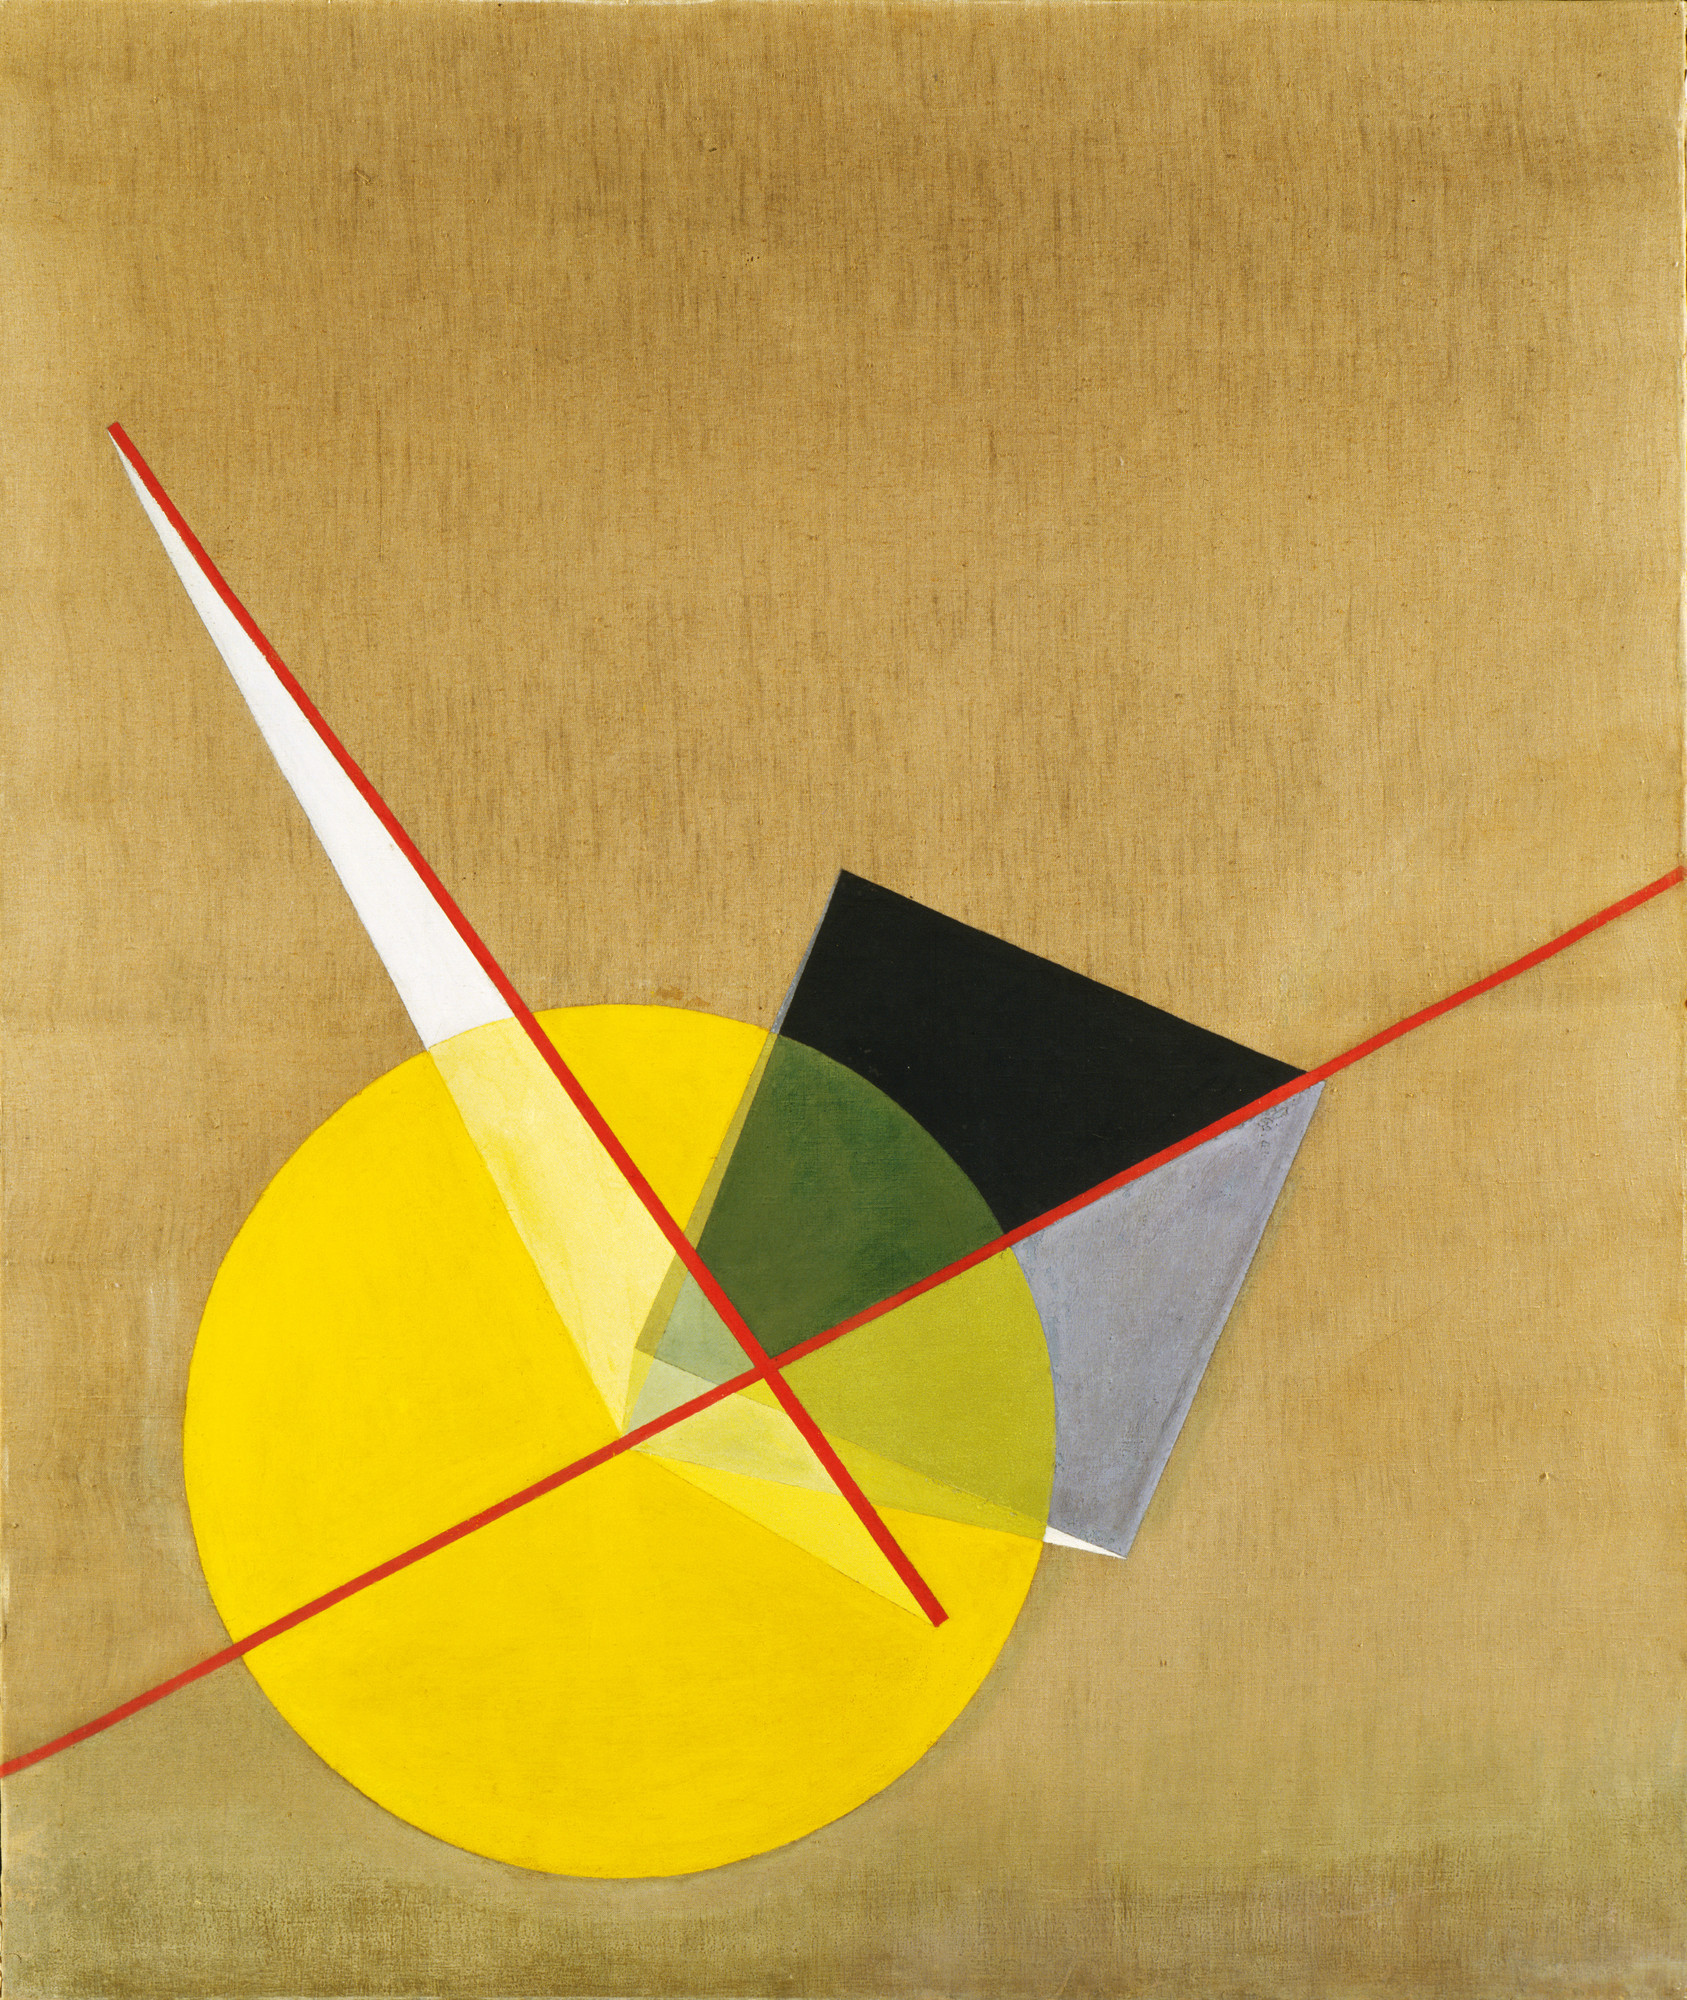 László Moholy-Nagy. Yellow Circle. 1921. Oil on canvas. 53 1/8 × 45″ (135 × 114.3 cm). The Riklis Collection of McCrory Corporation. © 2016 Artists Rights Society (ARS), New York / VG Bild-Kunst, Bonn